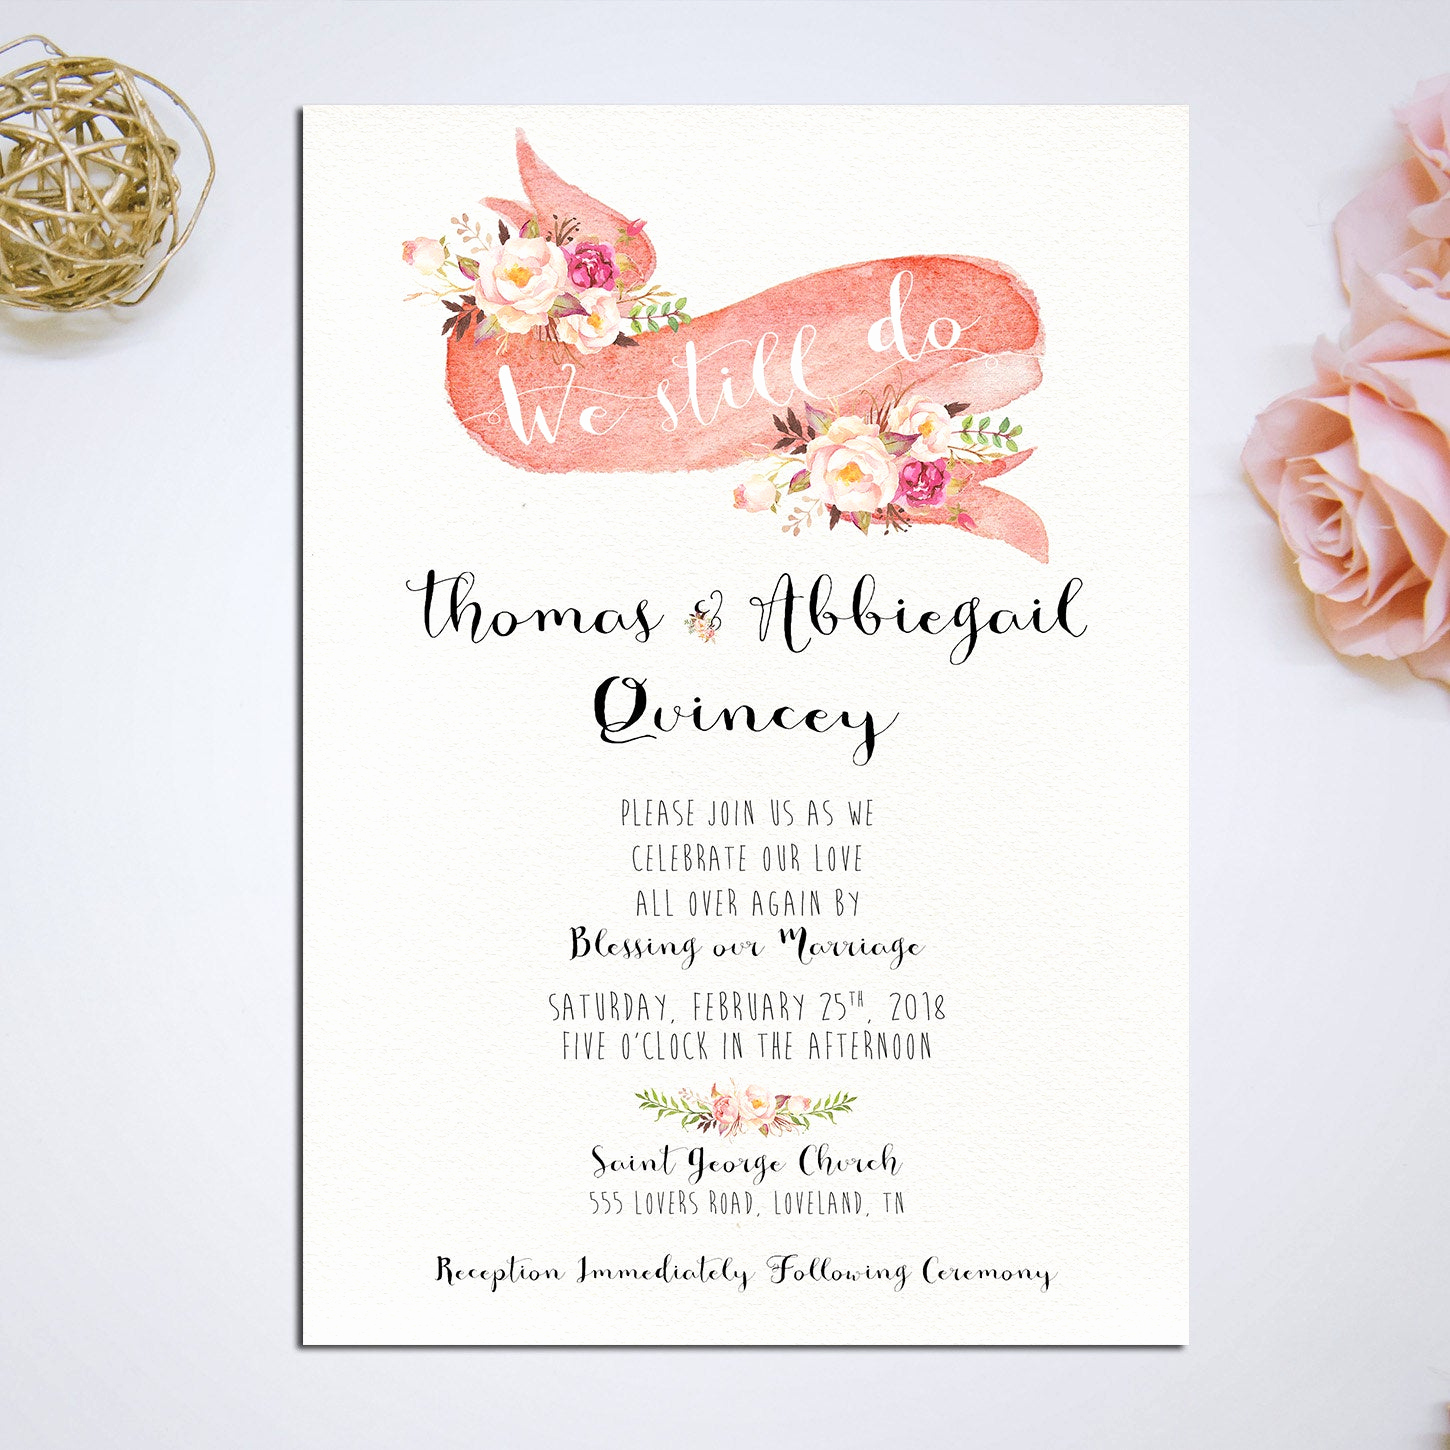 Vow Renewal Invitation Wording Lovely Vow Renewal Invitation We Still Do Romantic Pink